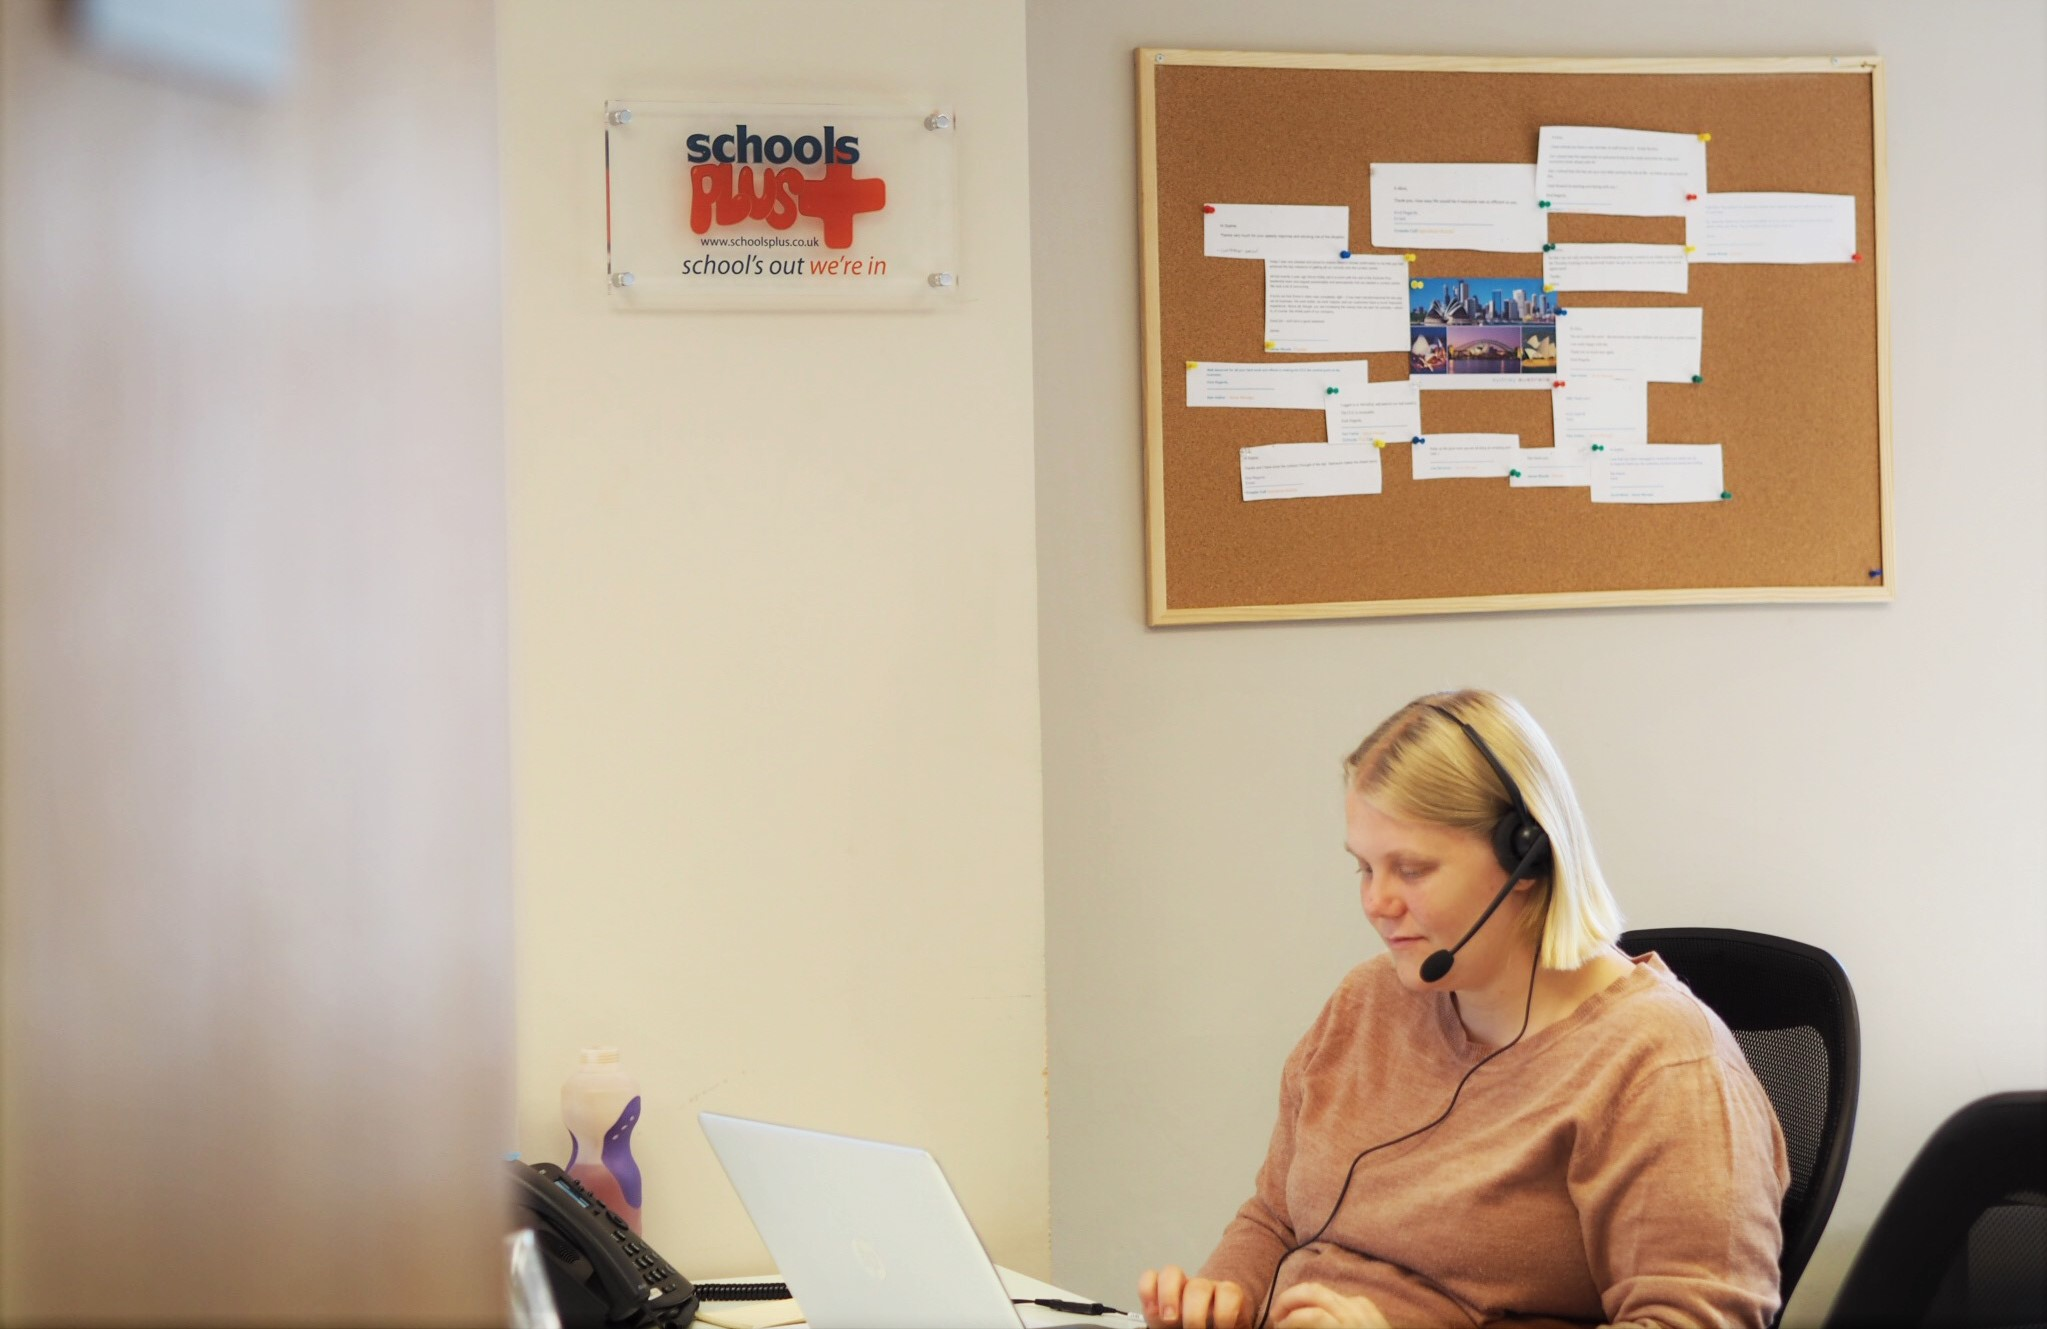 Schools Plus Customer Contact Centre